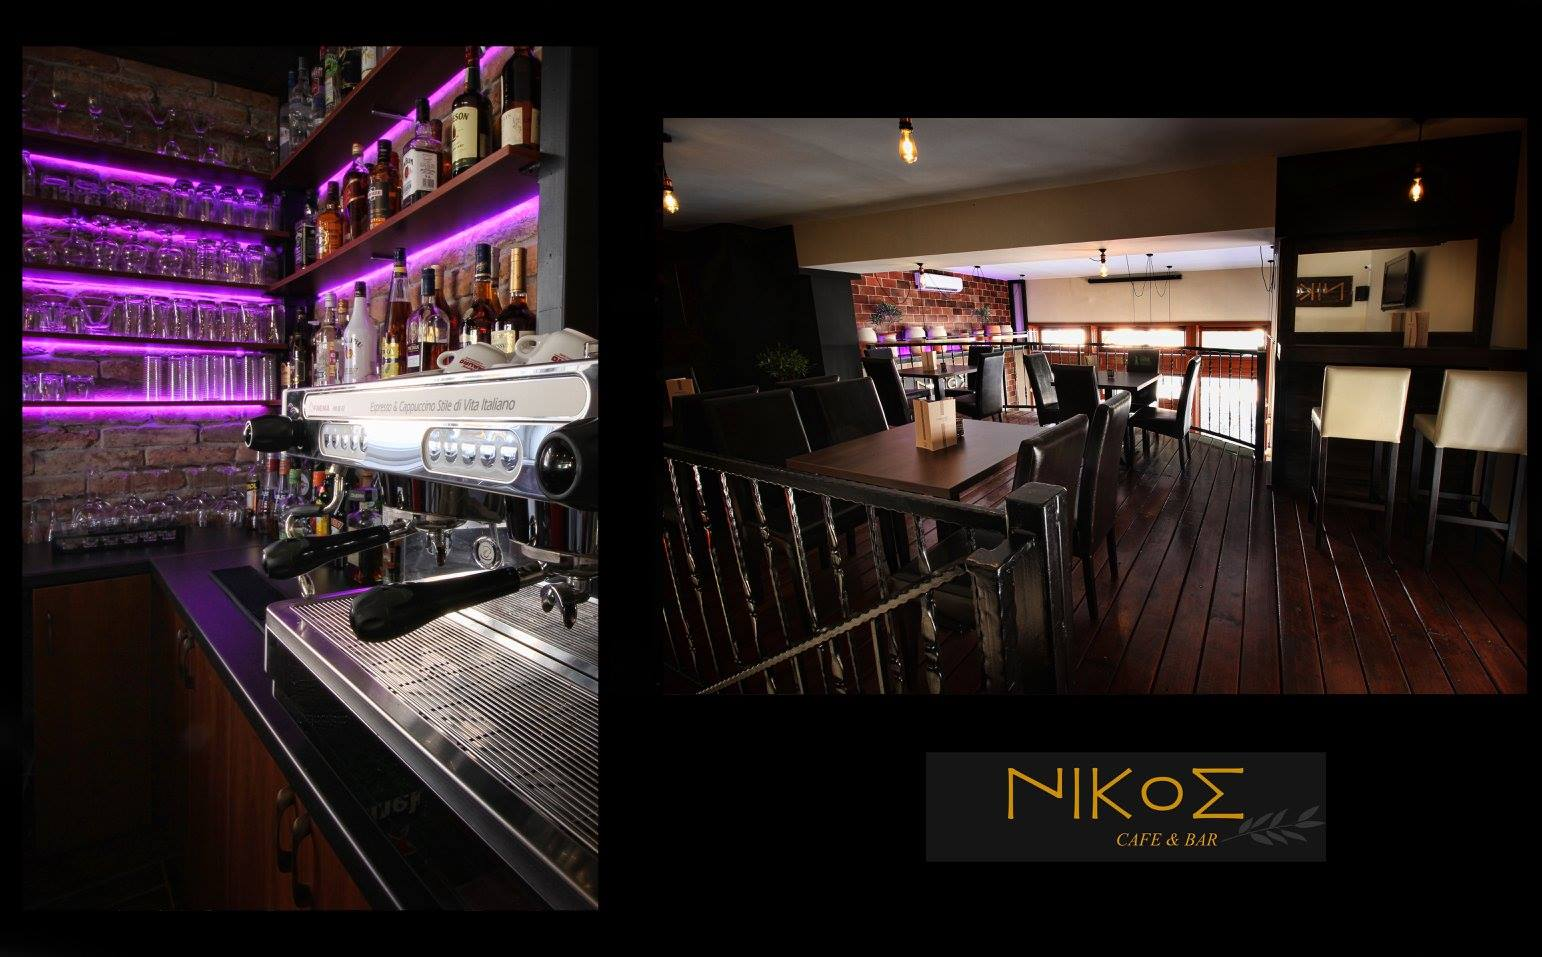 Nikos Cafe & Bar